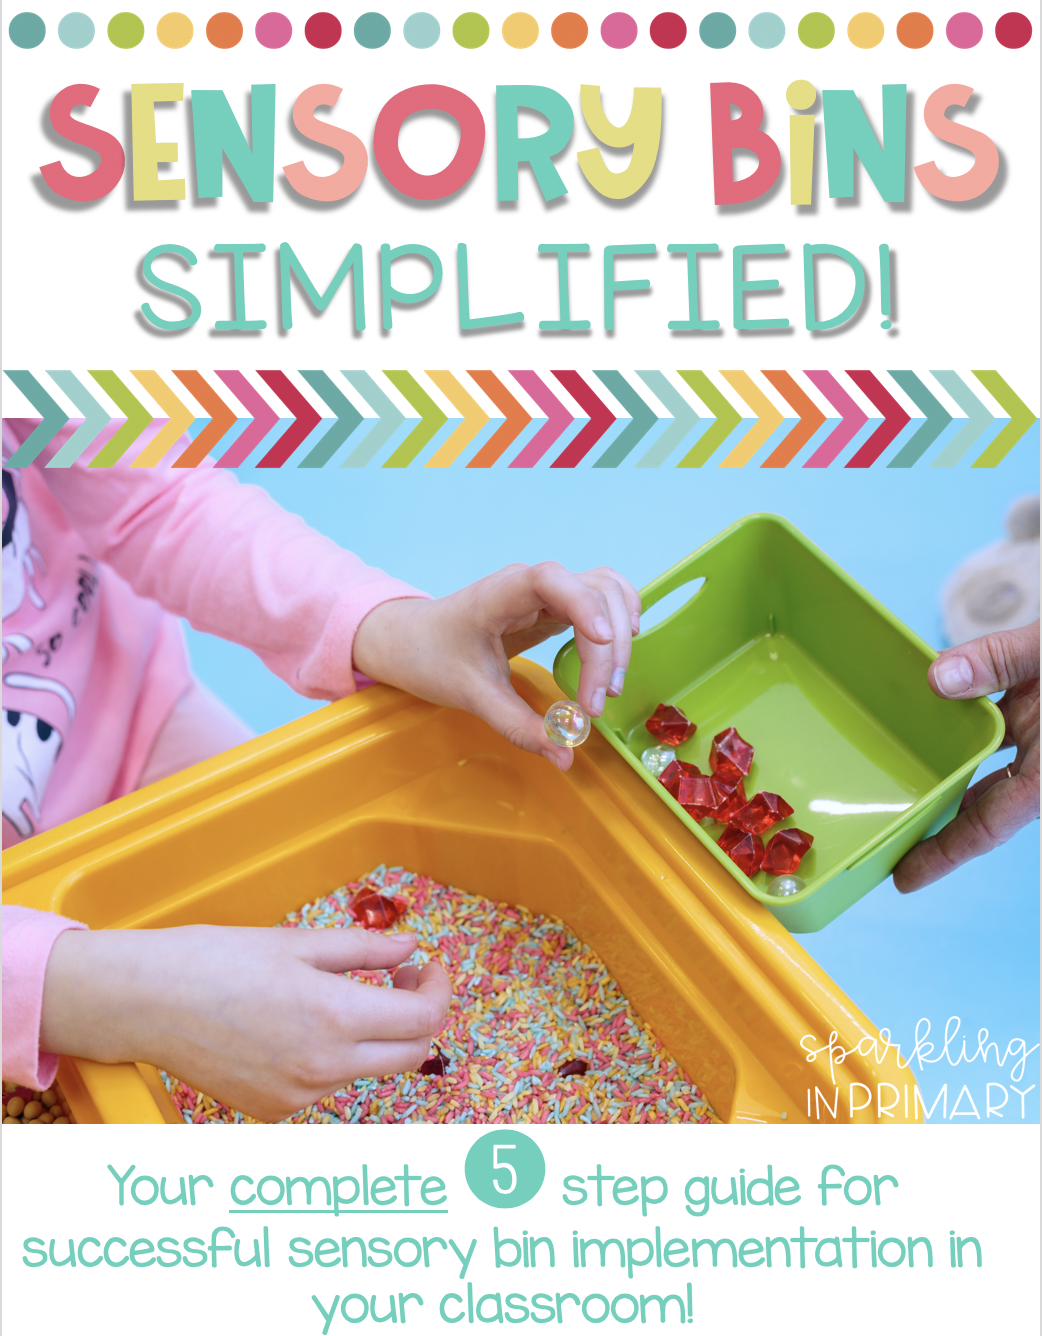 The 5 Step Guide To Successful Sensory Bin Implementation